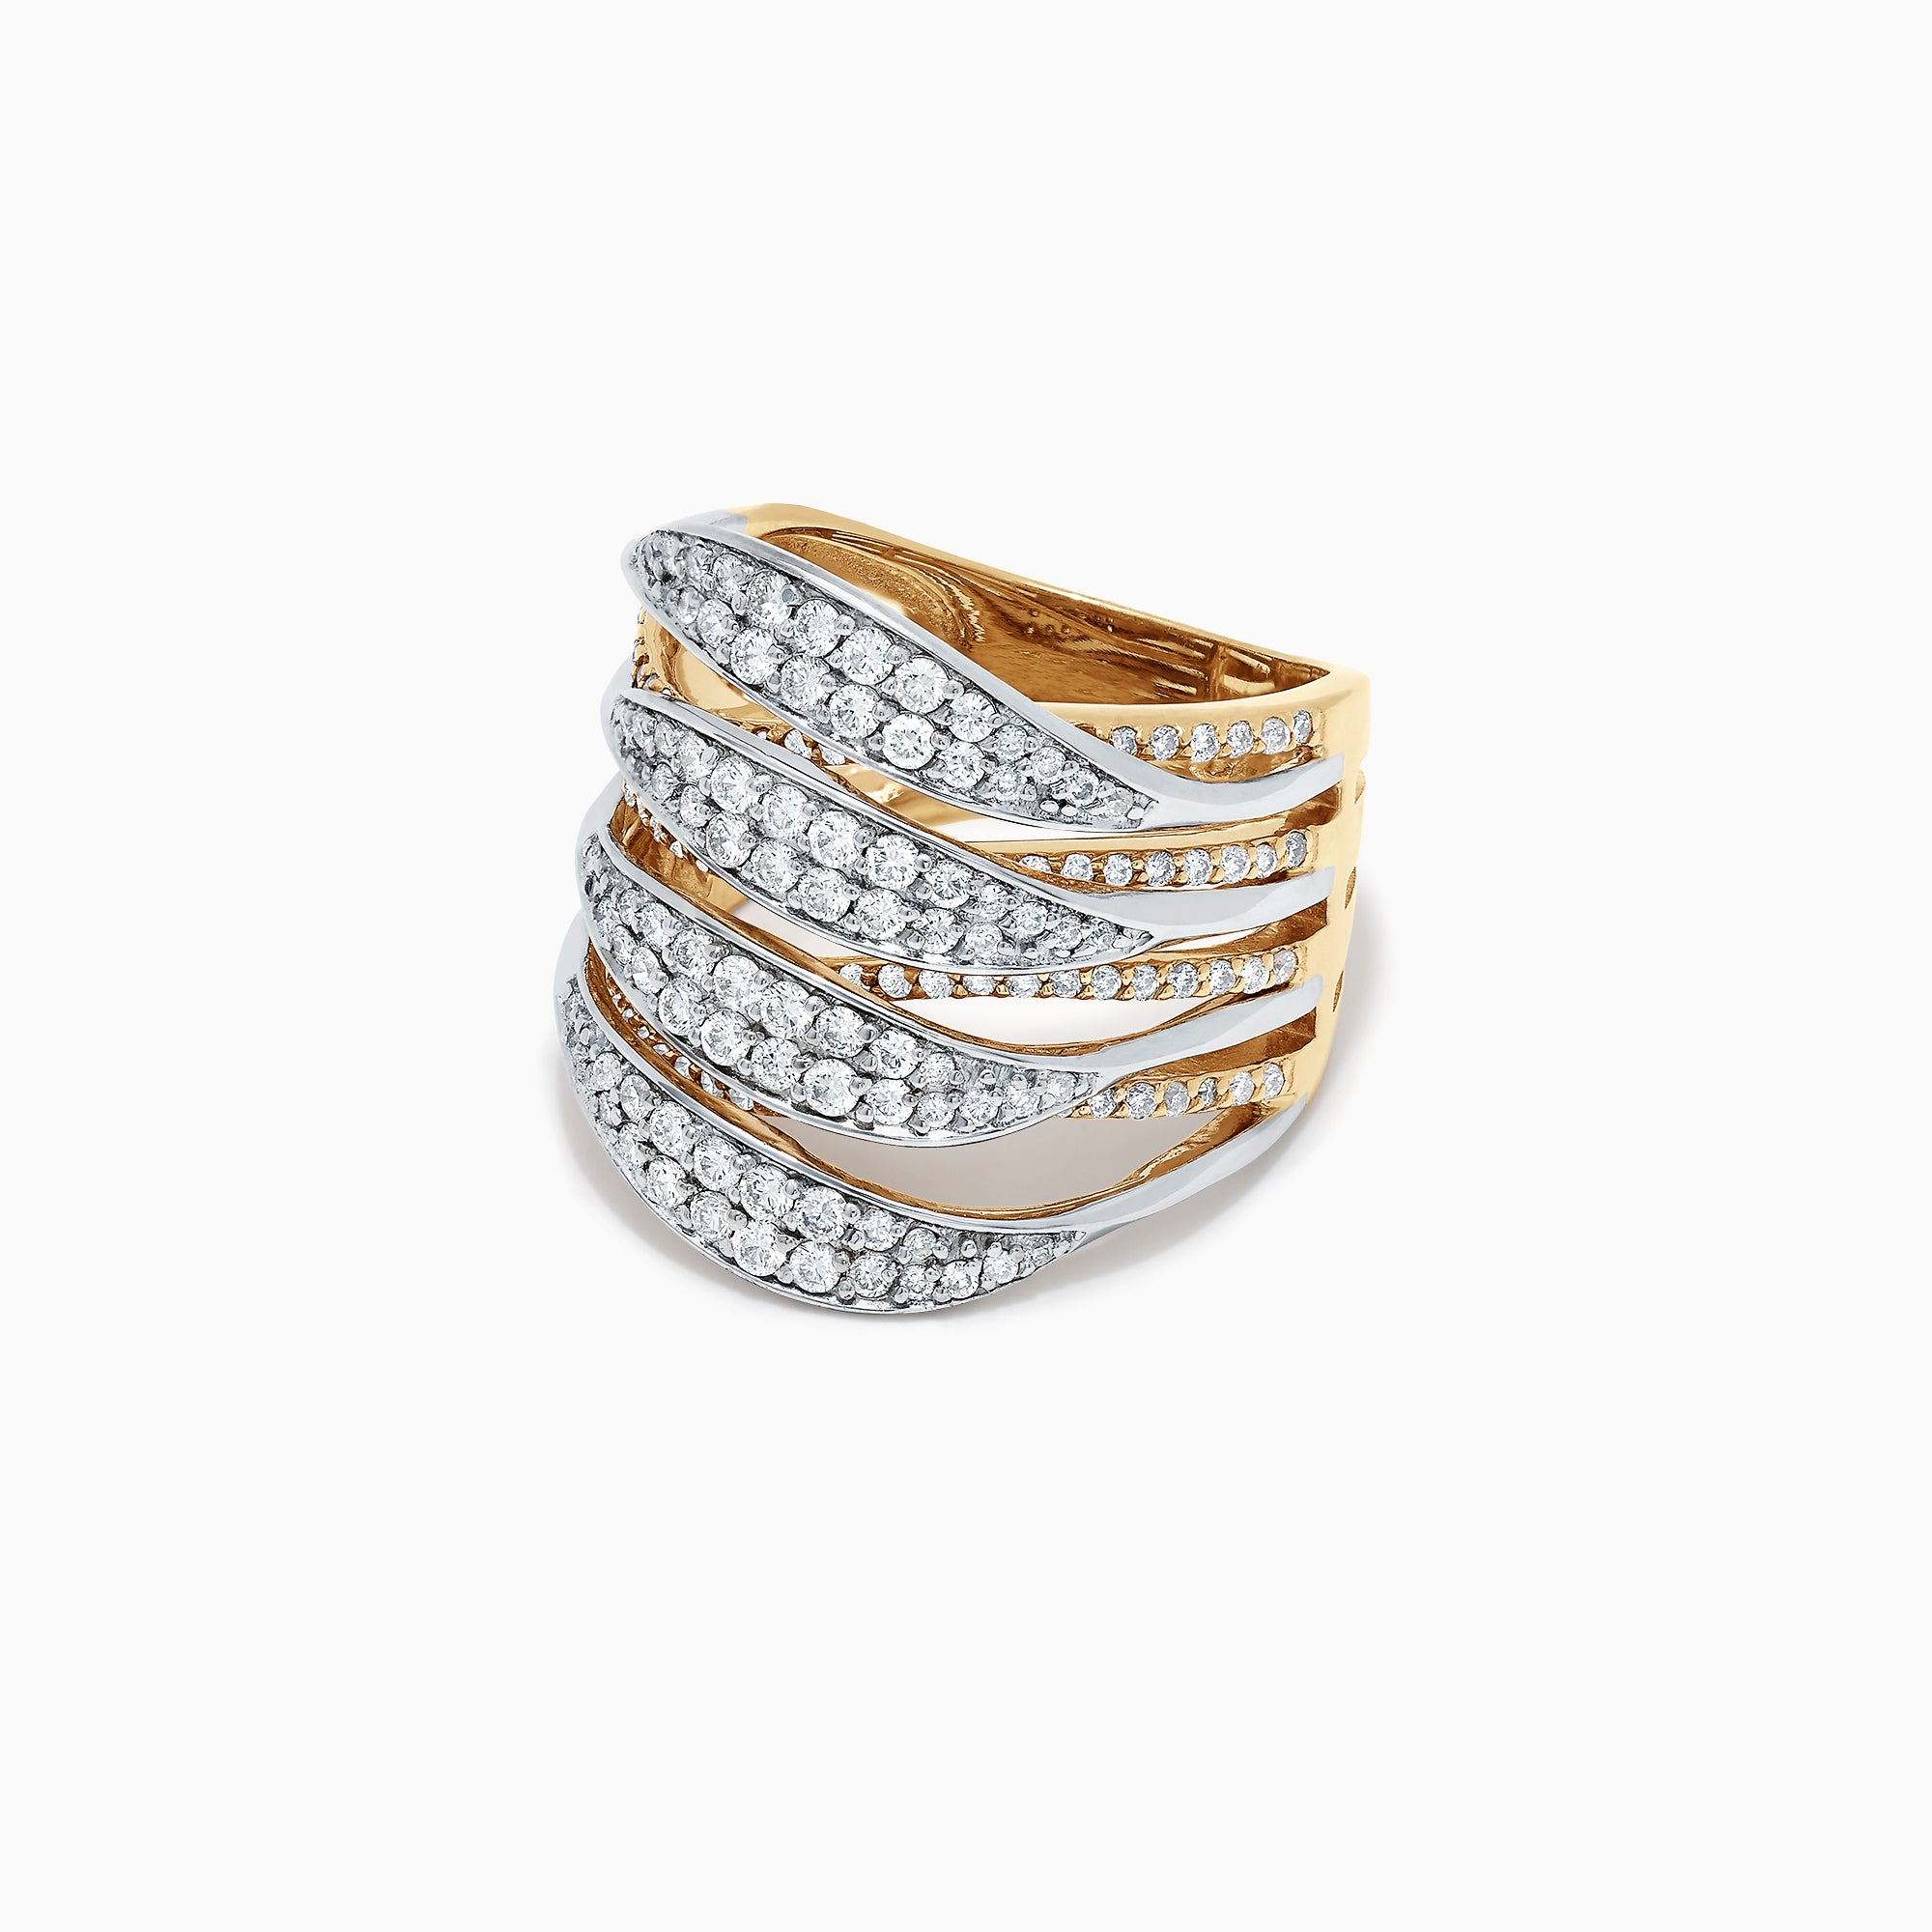 Effy Duo 14K Yellow and White Gold Diamond Ring, 1.31 TCW